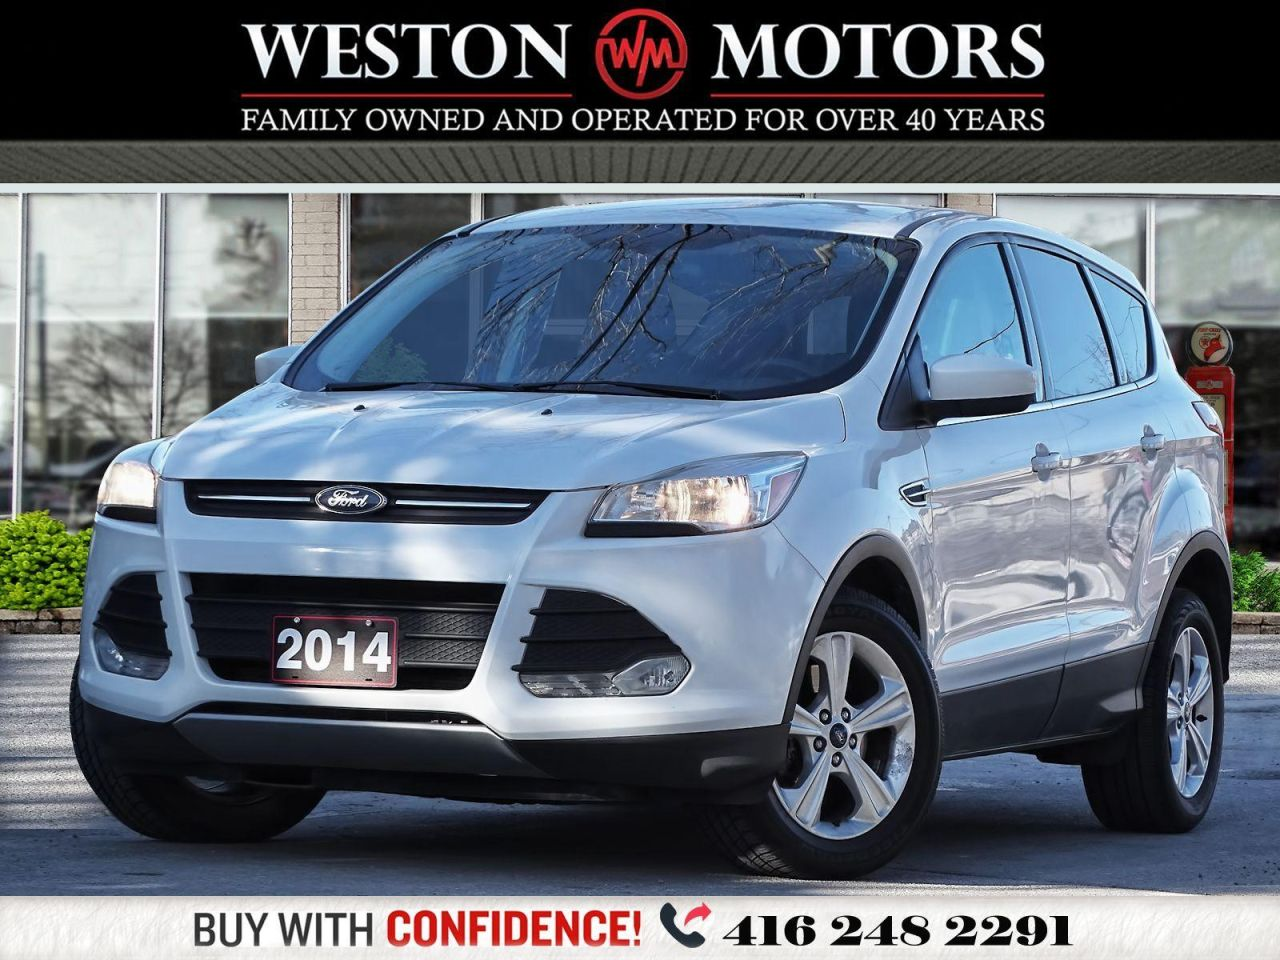 2014 Ford Escape SE*2.0L*AWD**REVCAM*HEATED SEATS*PICTURES COMING!*